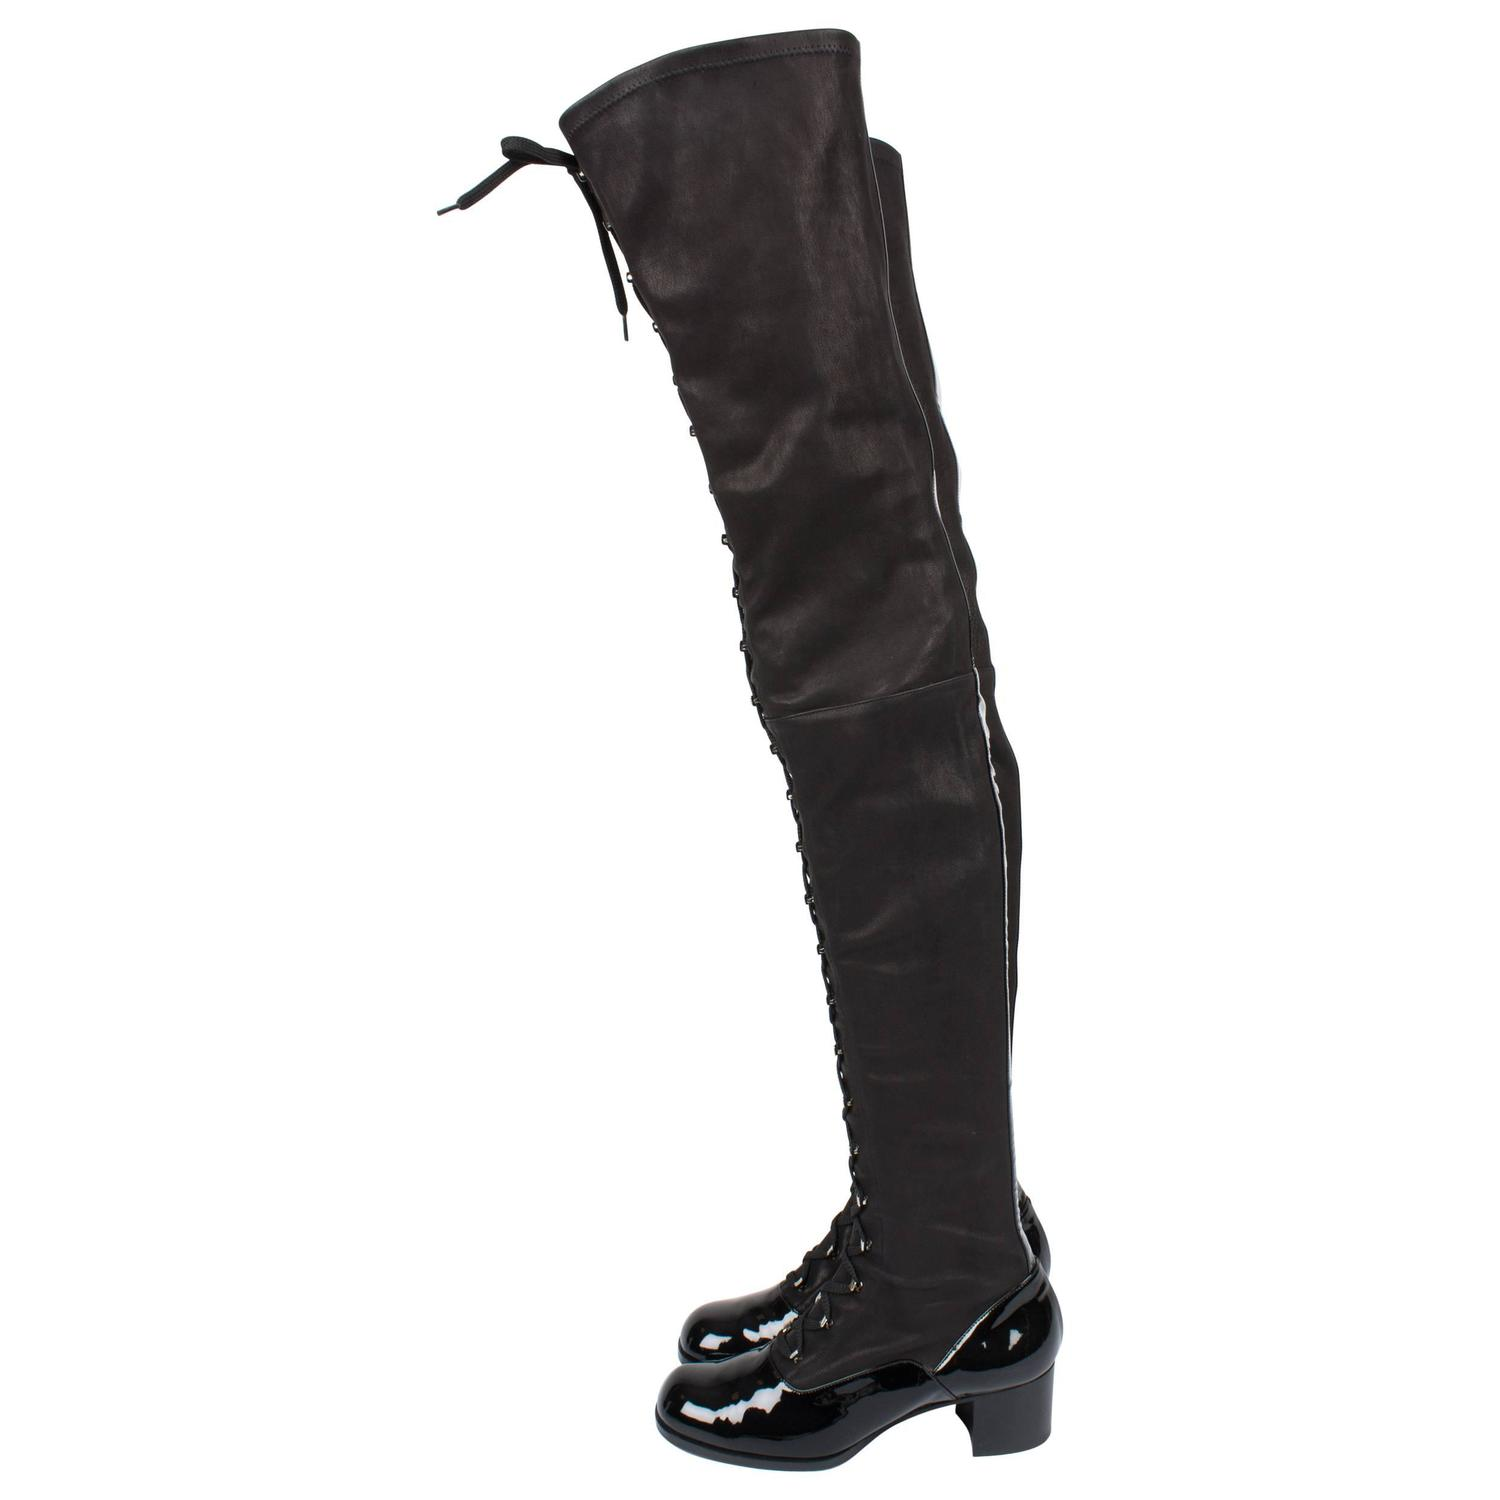 e84d21e1a0f Chanel Thigh High Lace-up Boots - black For Sale at 1stdibs